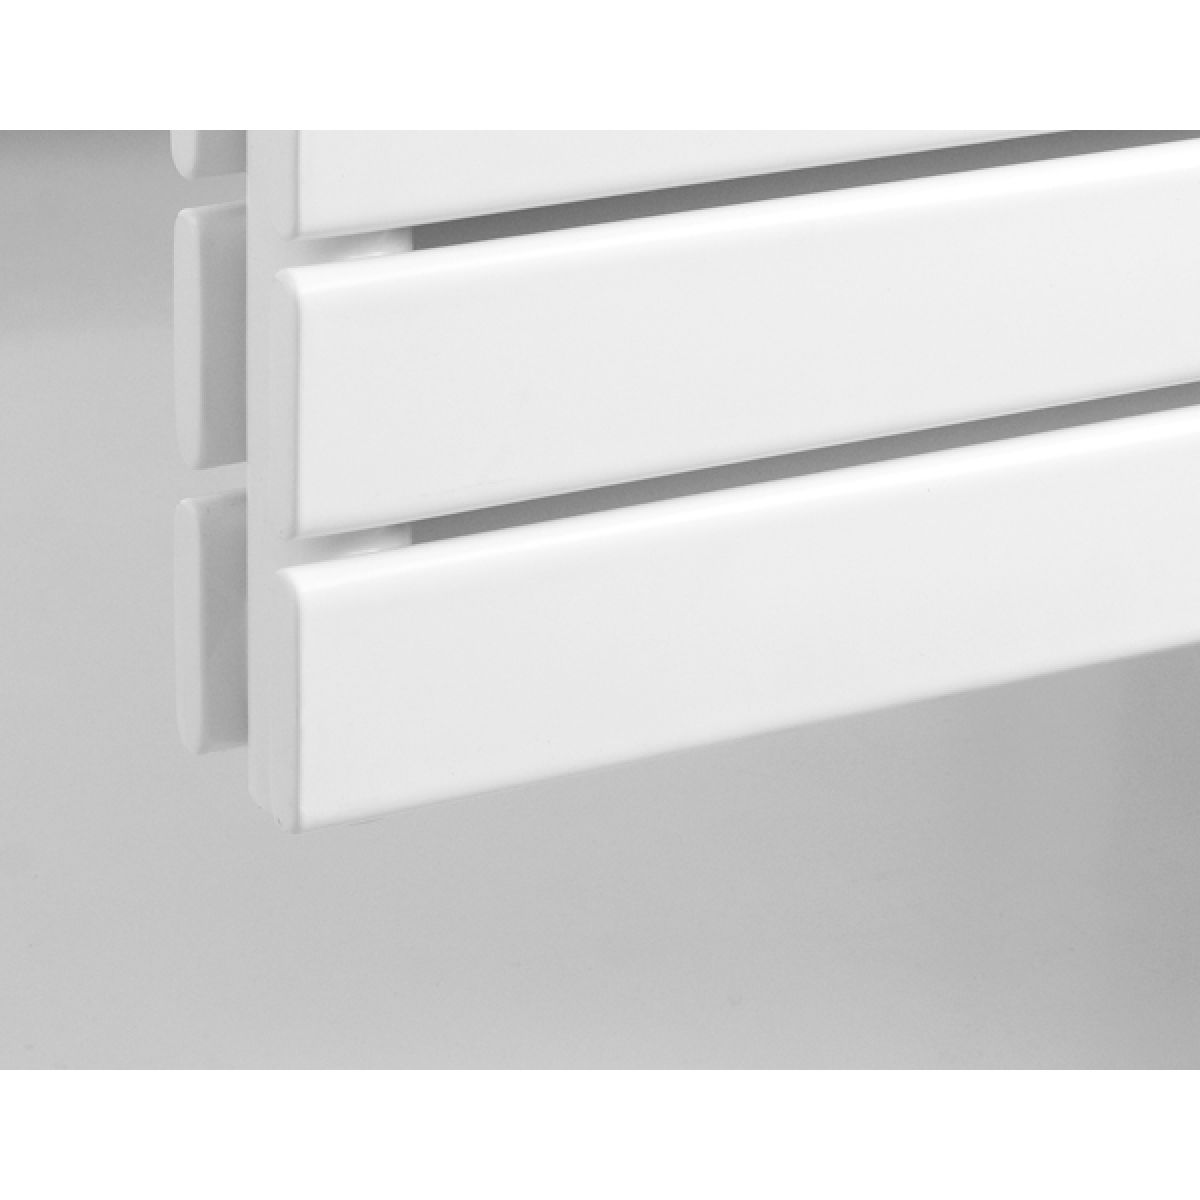 Rione Double White Electric Horizontal Radiator 550 x 1200mm Detail 1